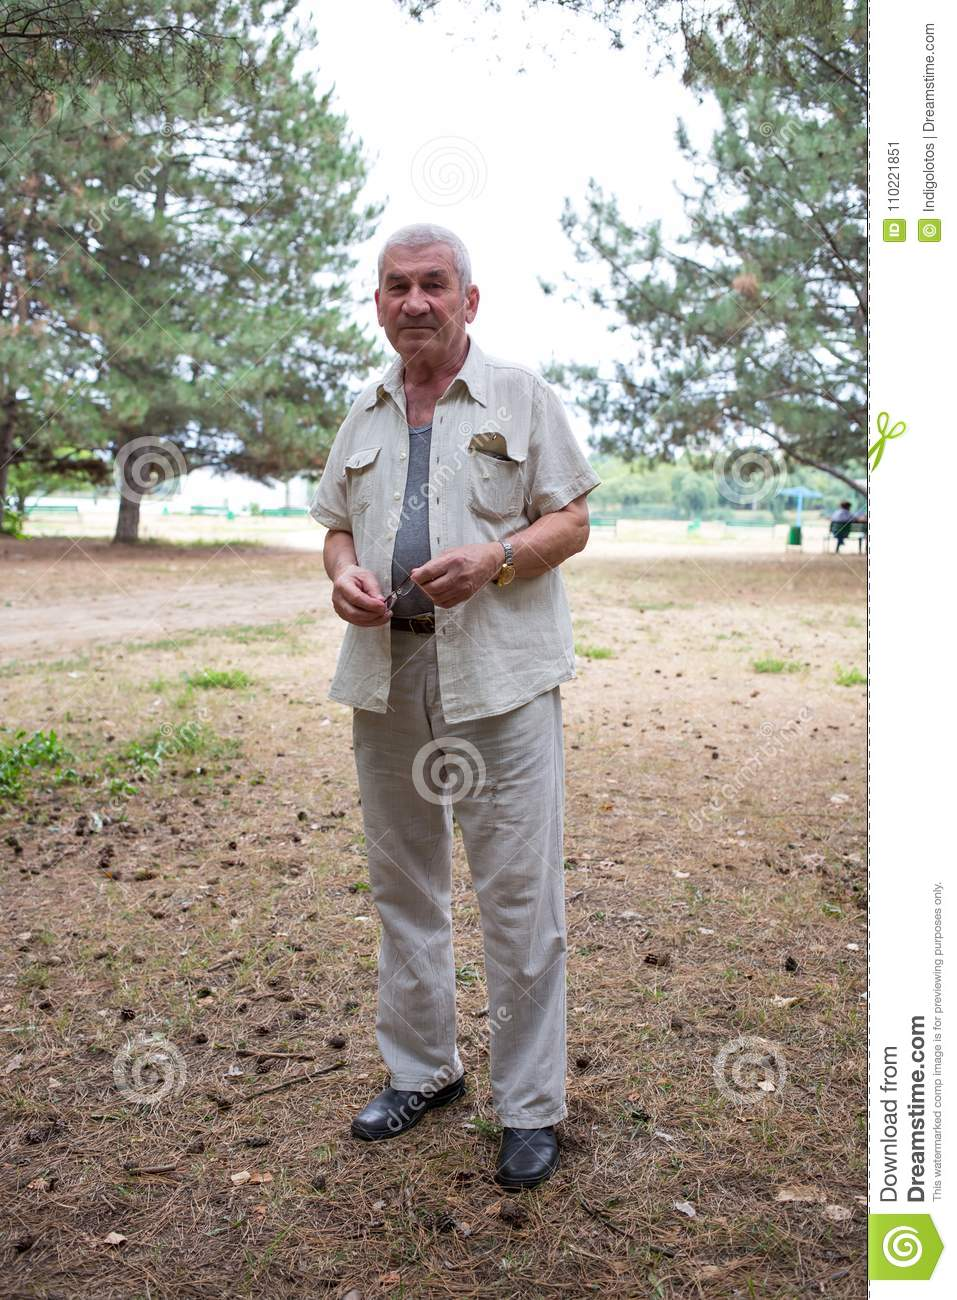 618525fbc0b5 Old Man With Glasses In Park. Stock Image - Image of adult